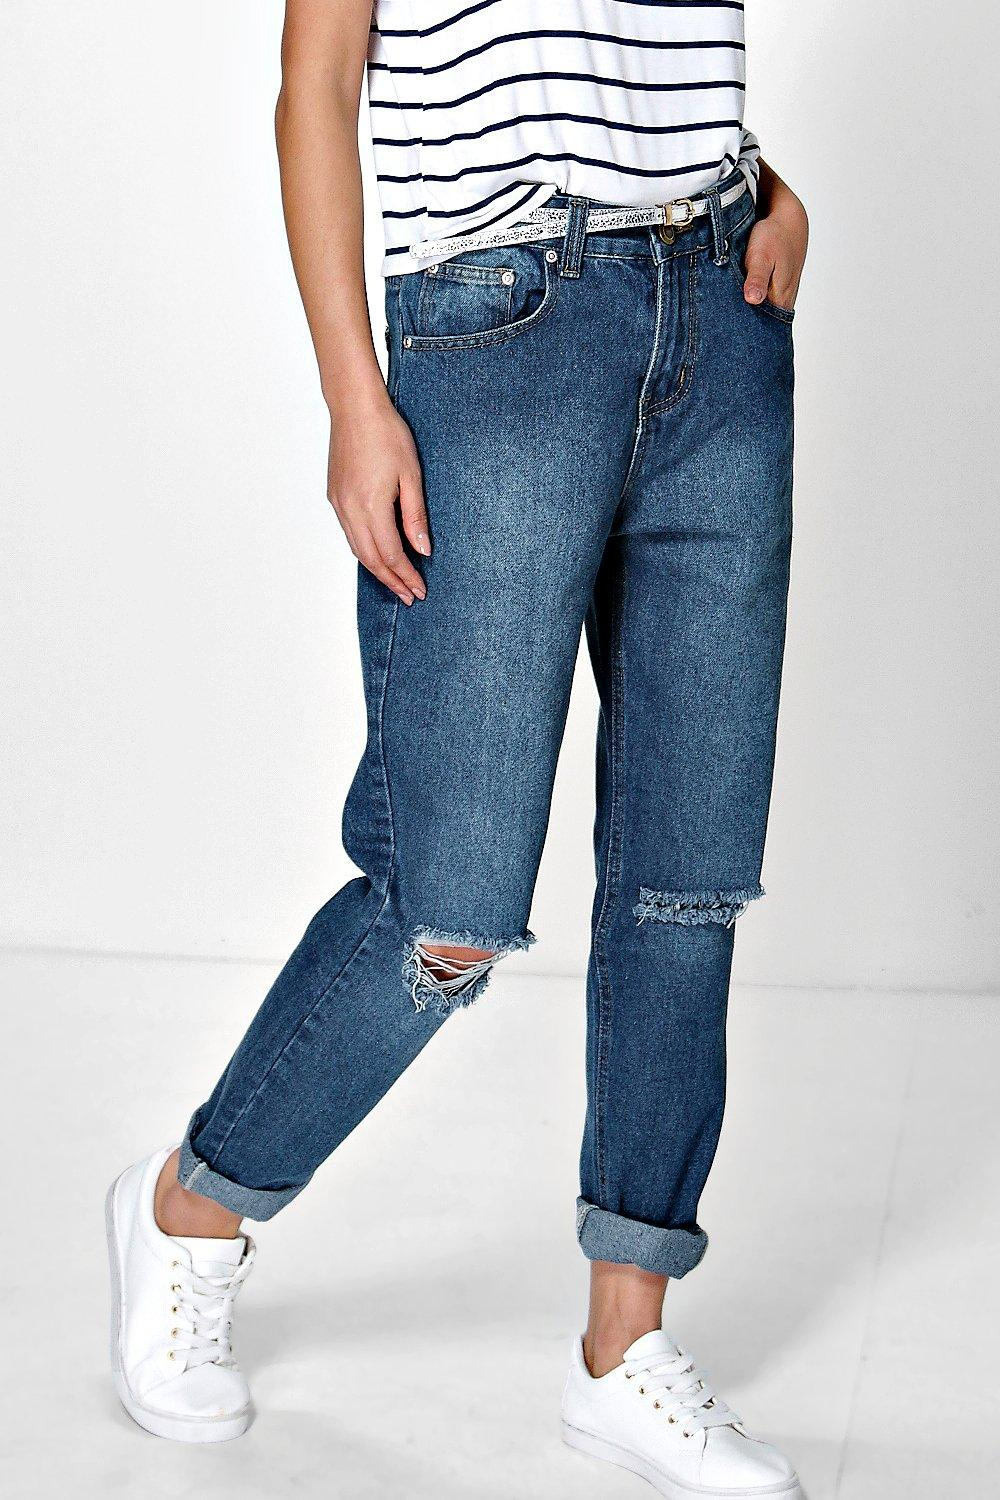 Hatty High Dark Wash Distressed Boyfriend Jeans